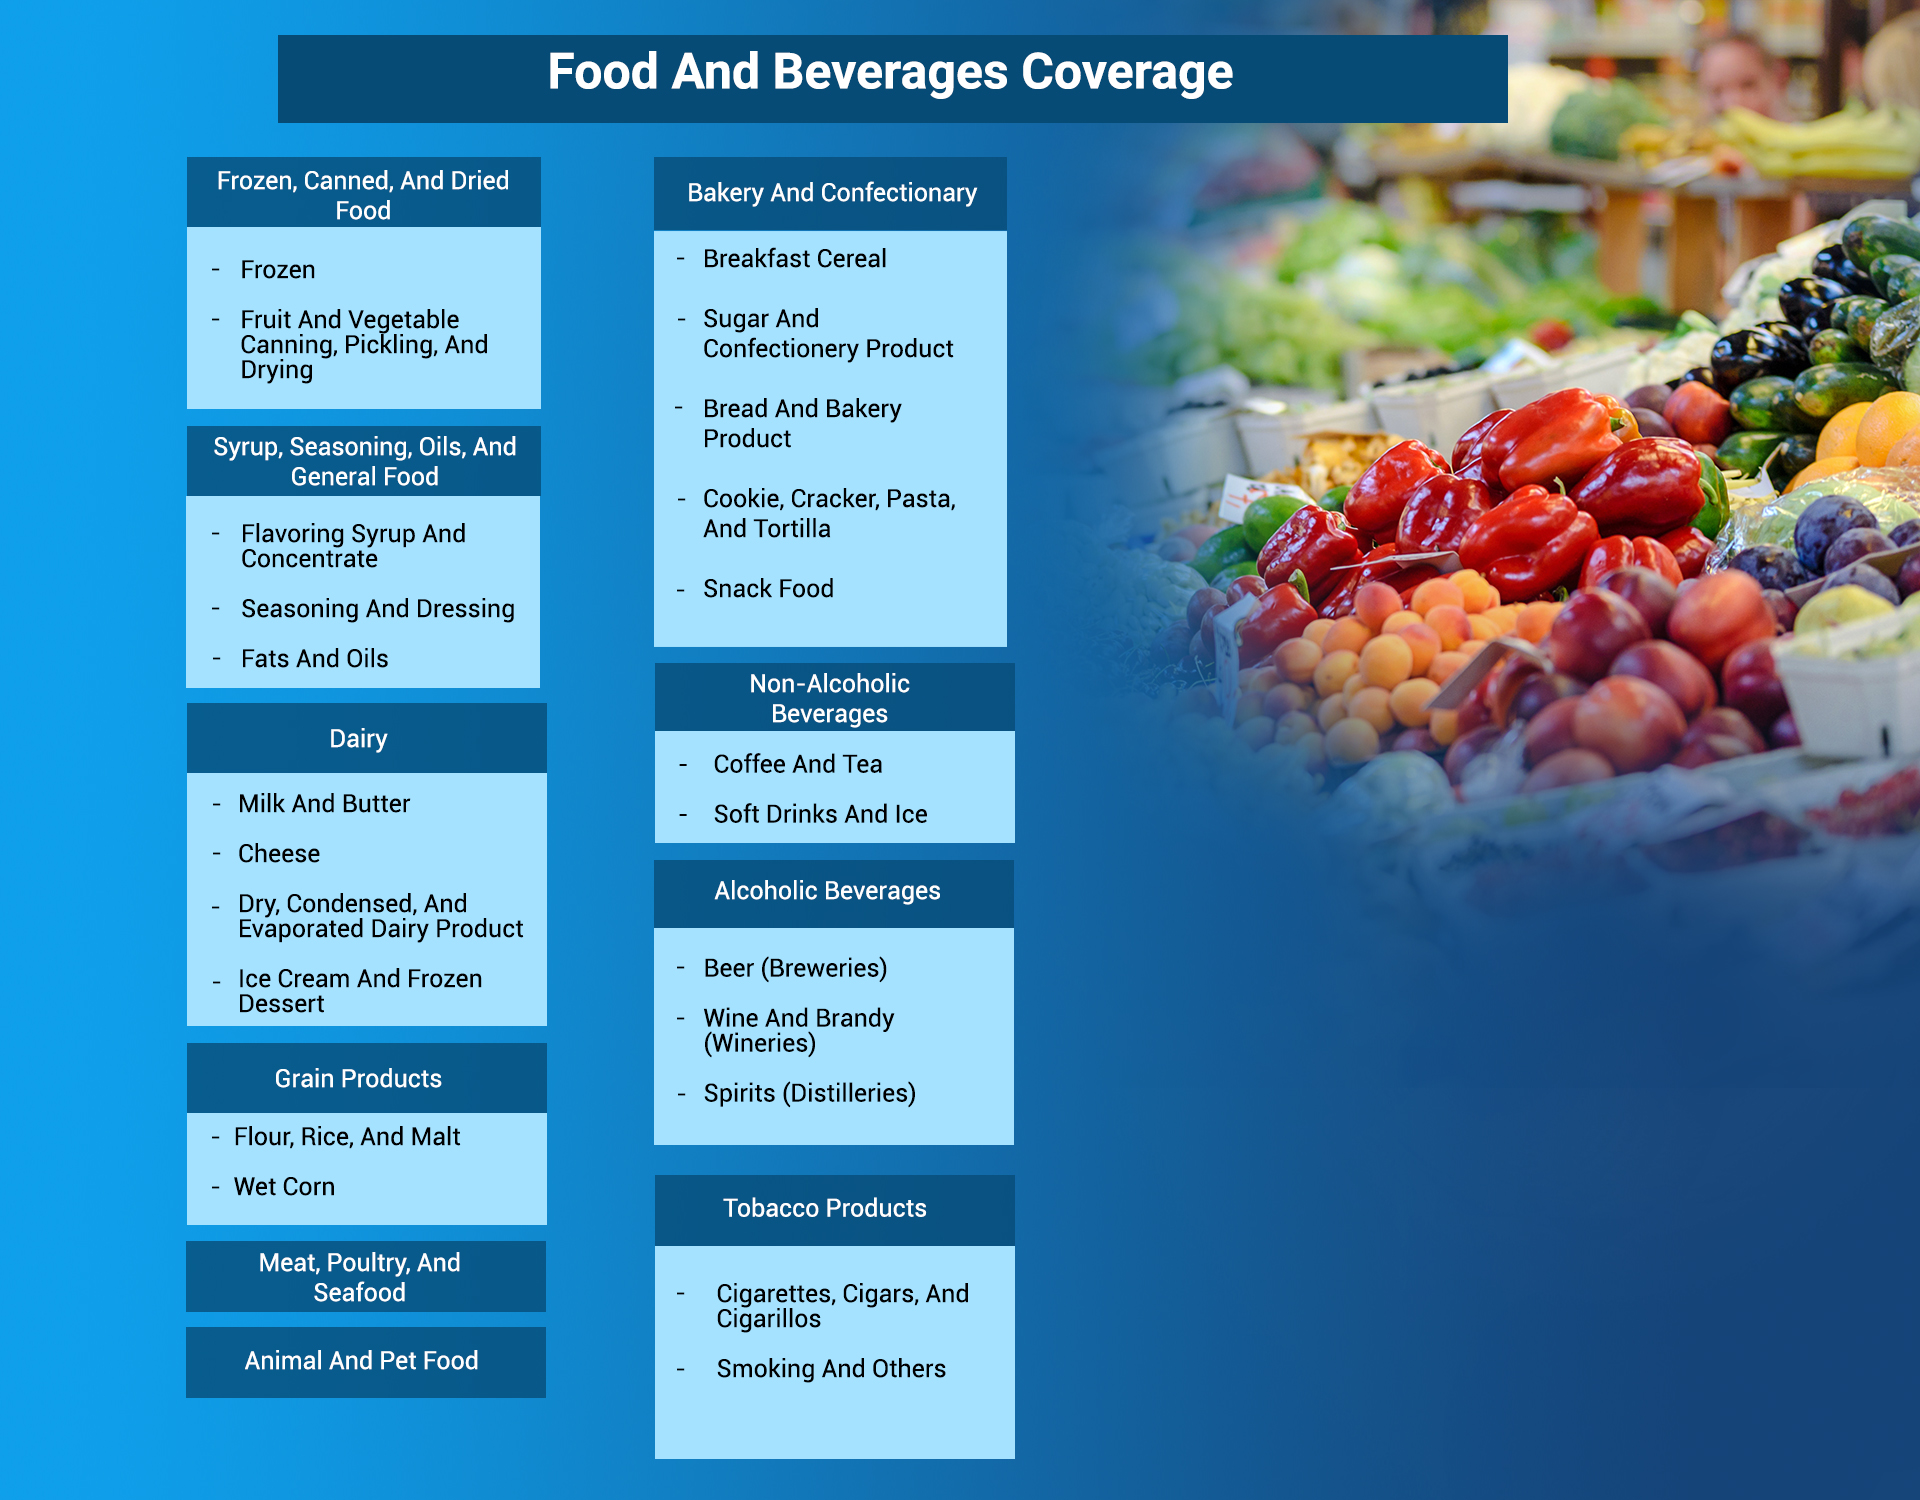 Food and Beverages Coverage